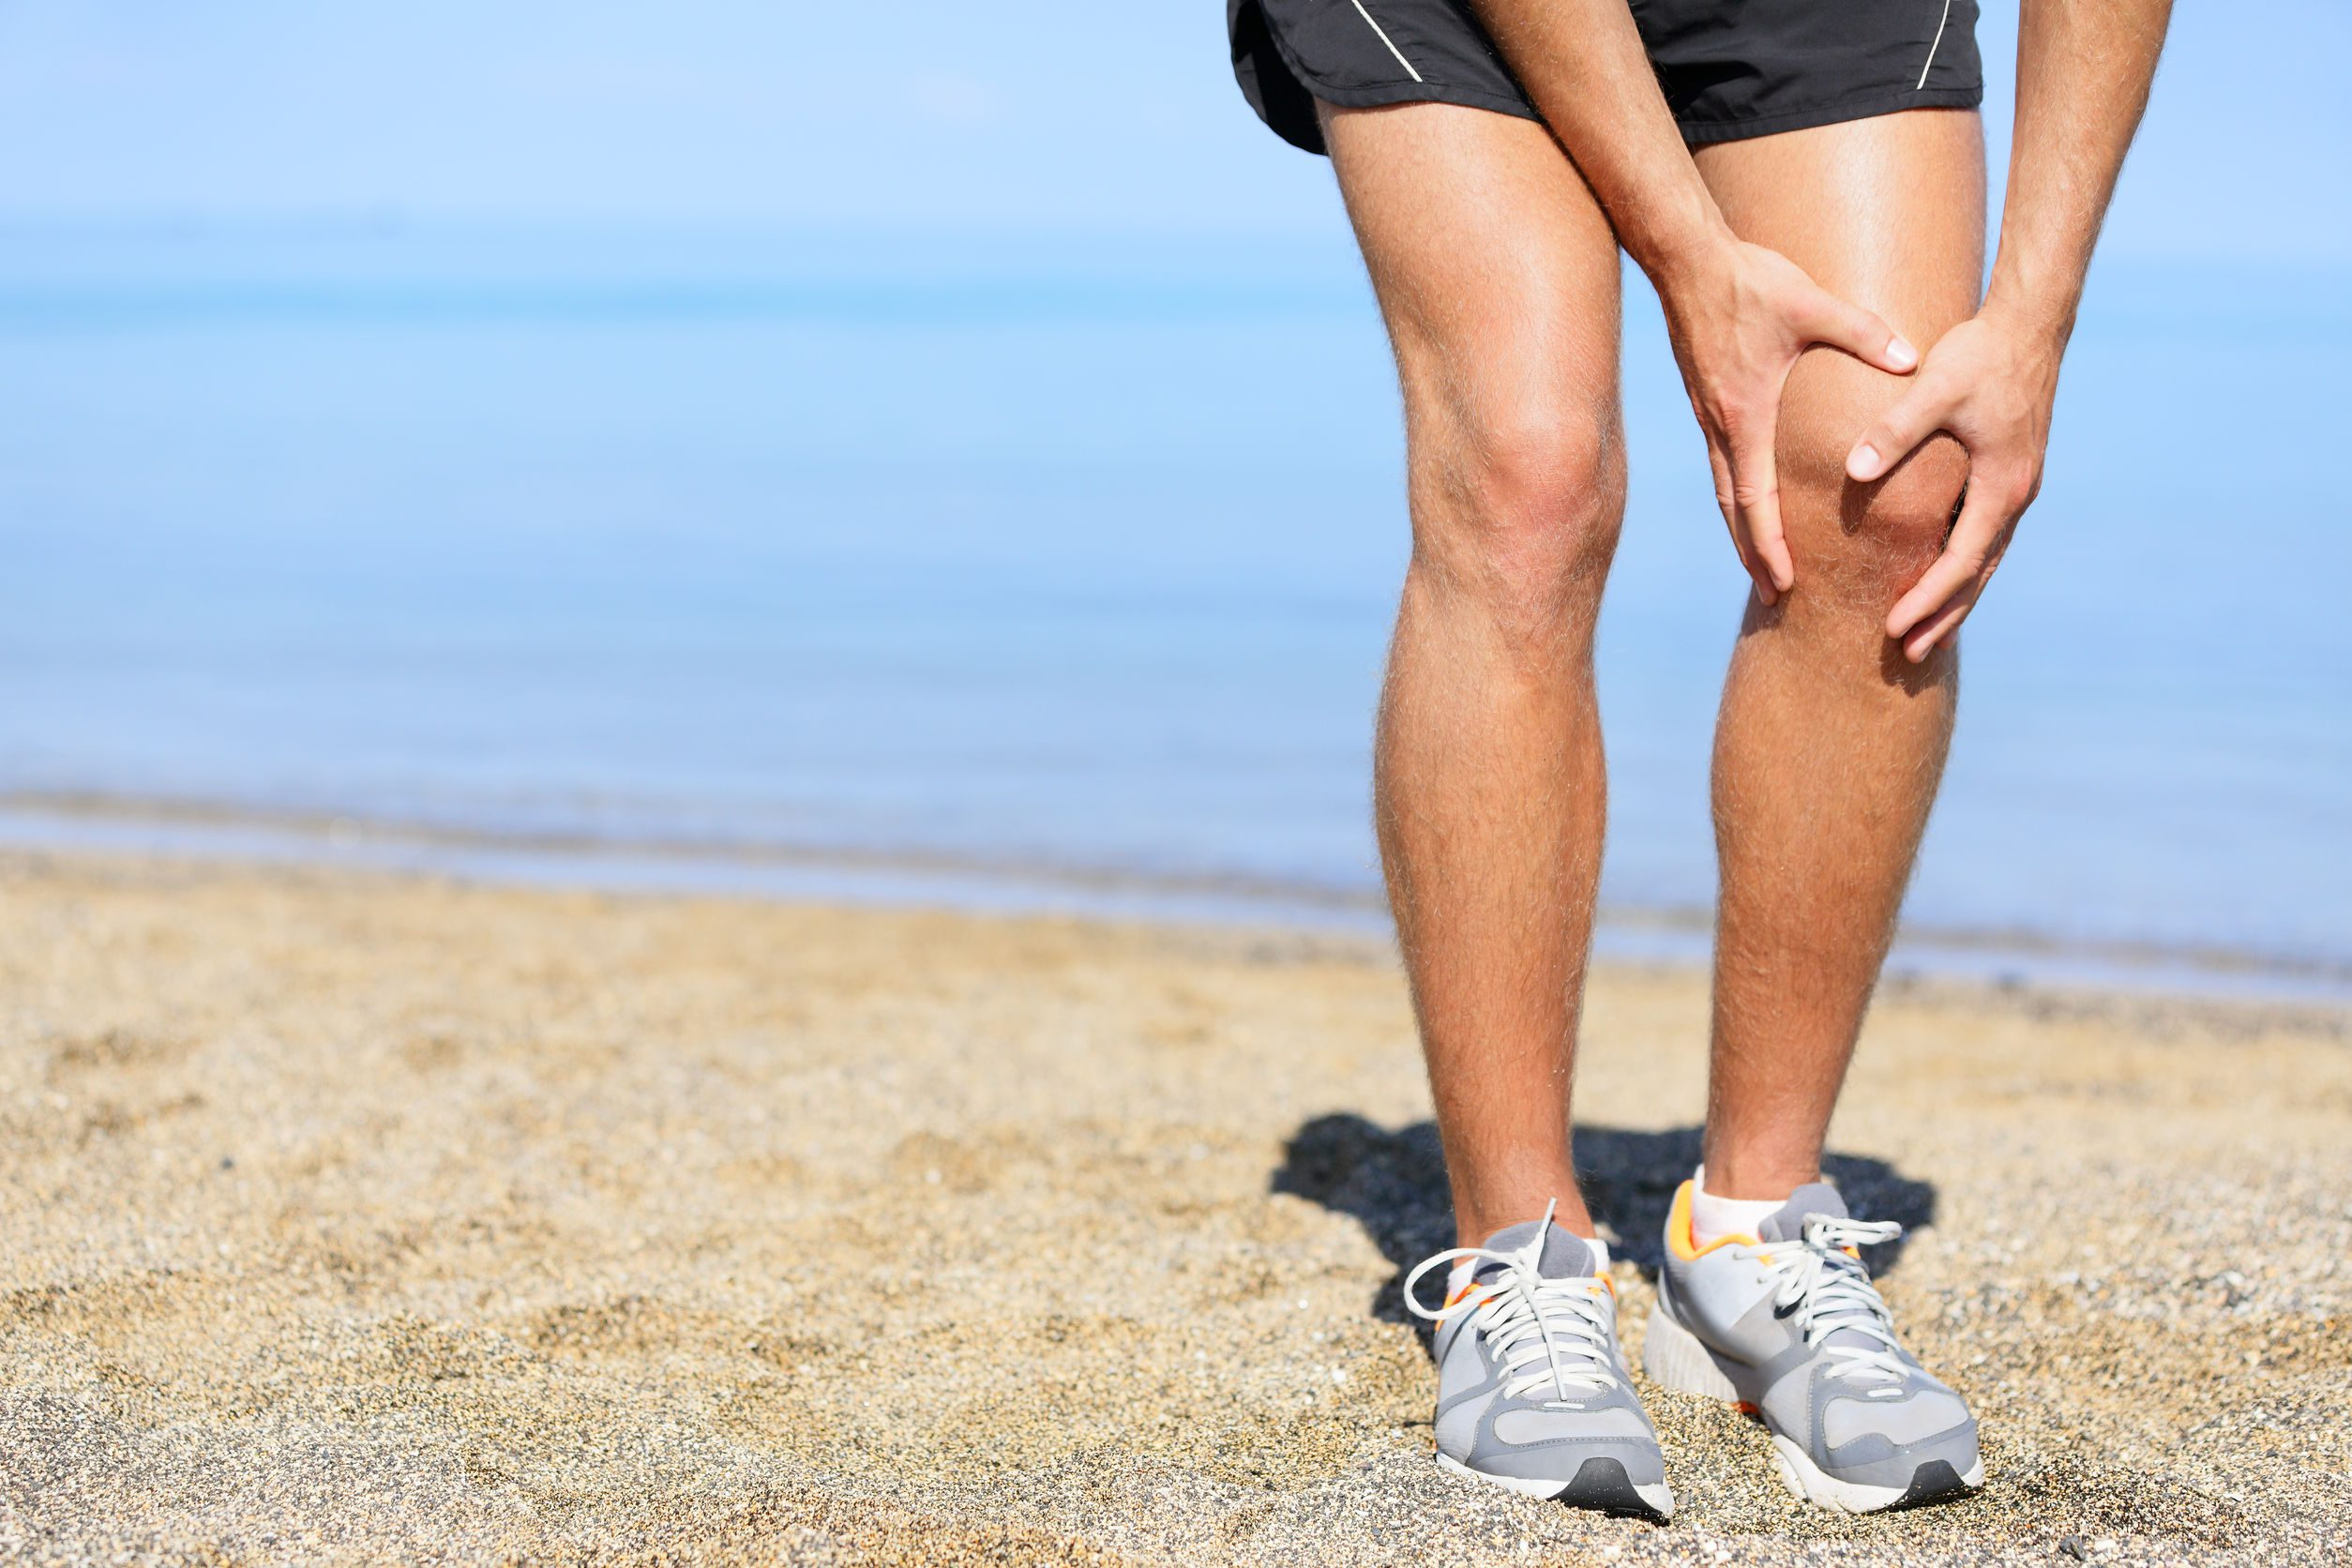 losing-weight-reduces-knee-pain-